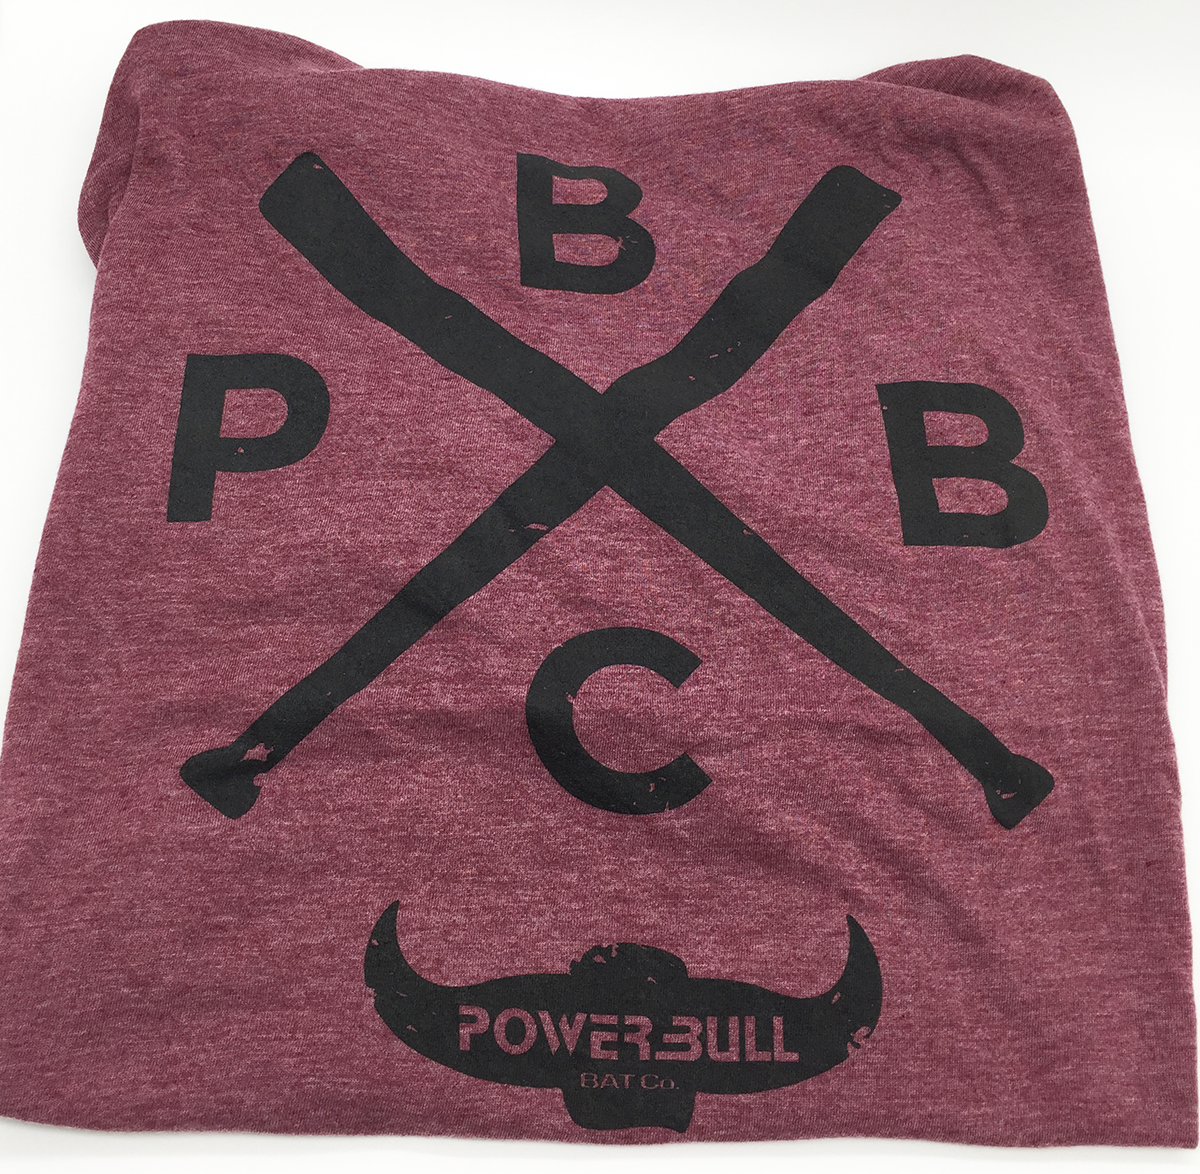 PBBC - Powerbull Bat Co.